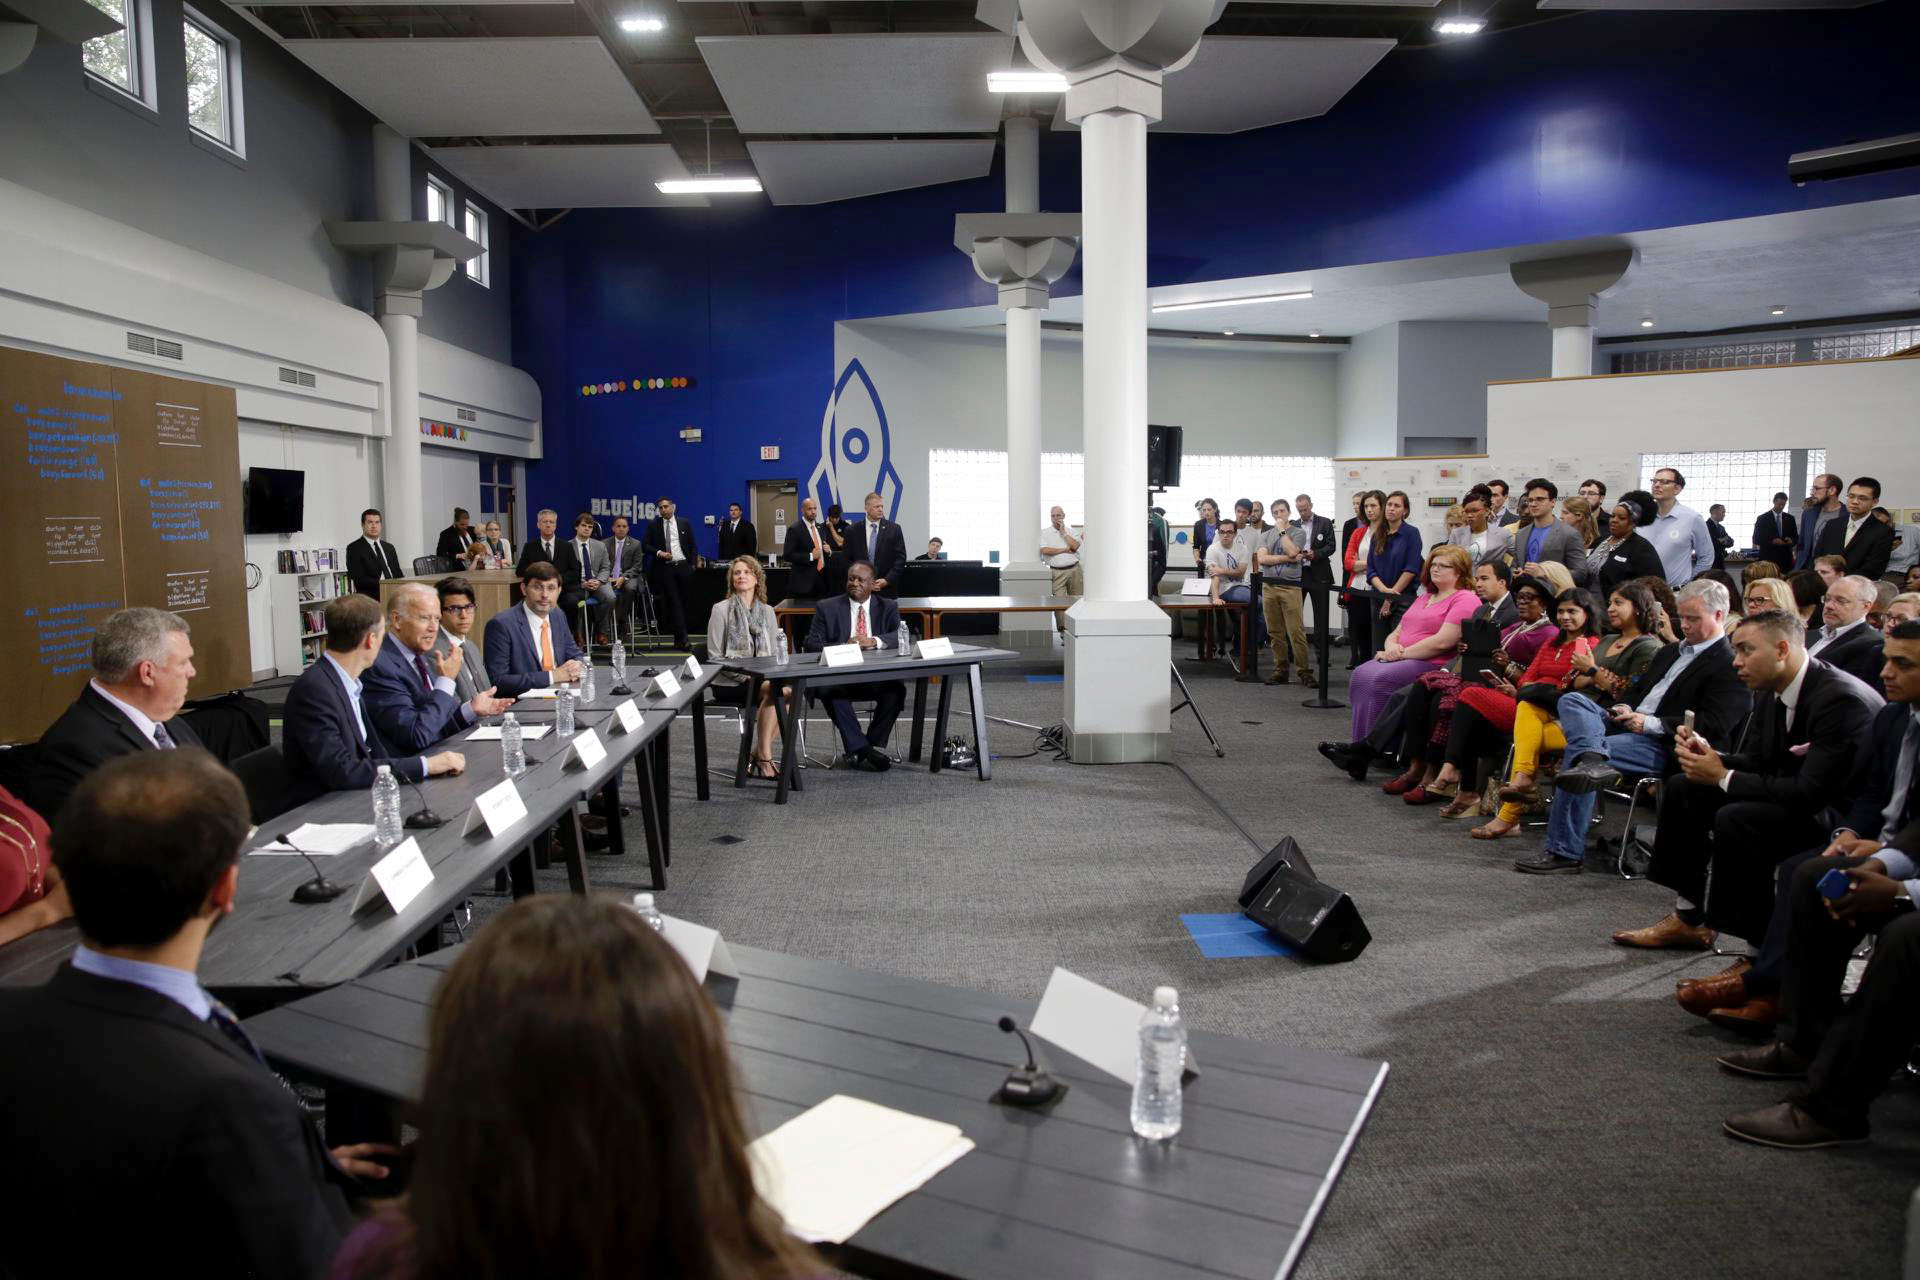 Vice President Joe Biden gives remarks at a roundtable on a tech hire initiative at the LaunchCode Mentor Center in St. Louis, Missouri, Sept. 9, 2016. (Official White House Photo by David Lienemann)